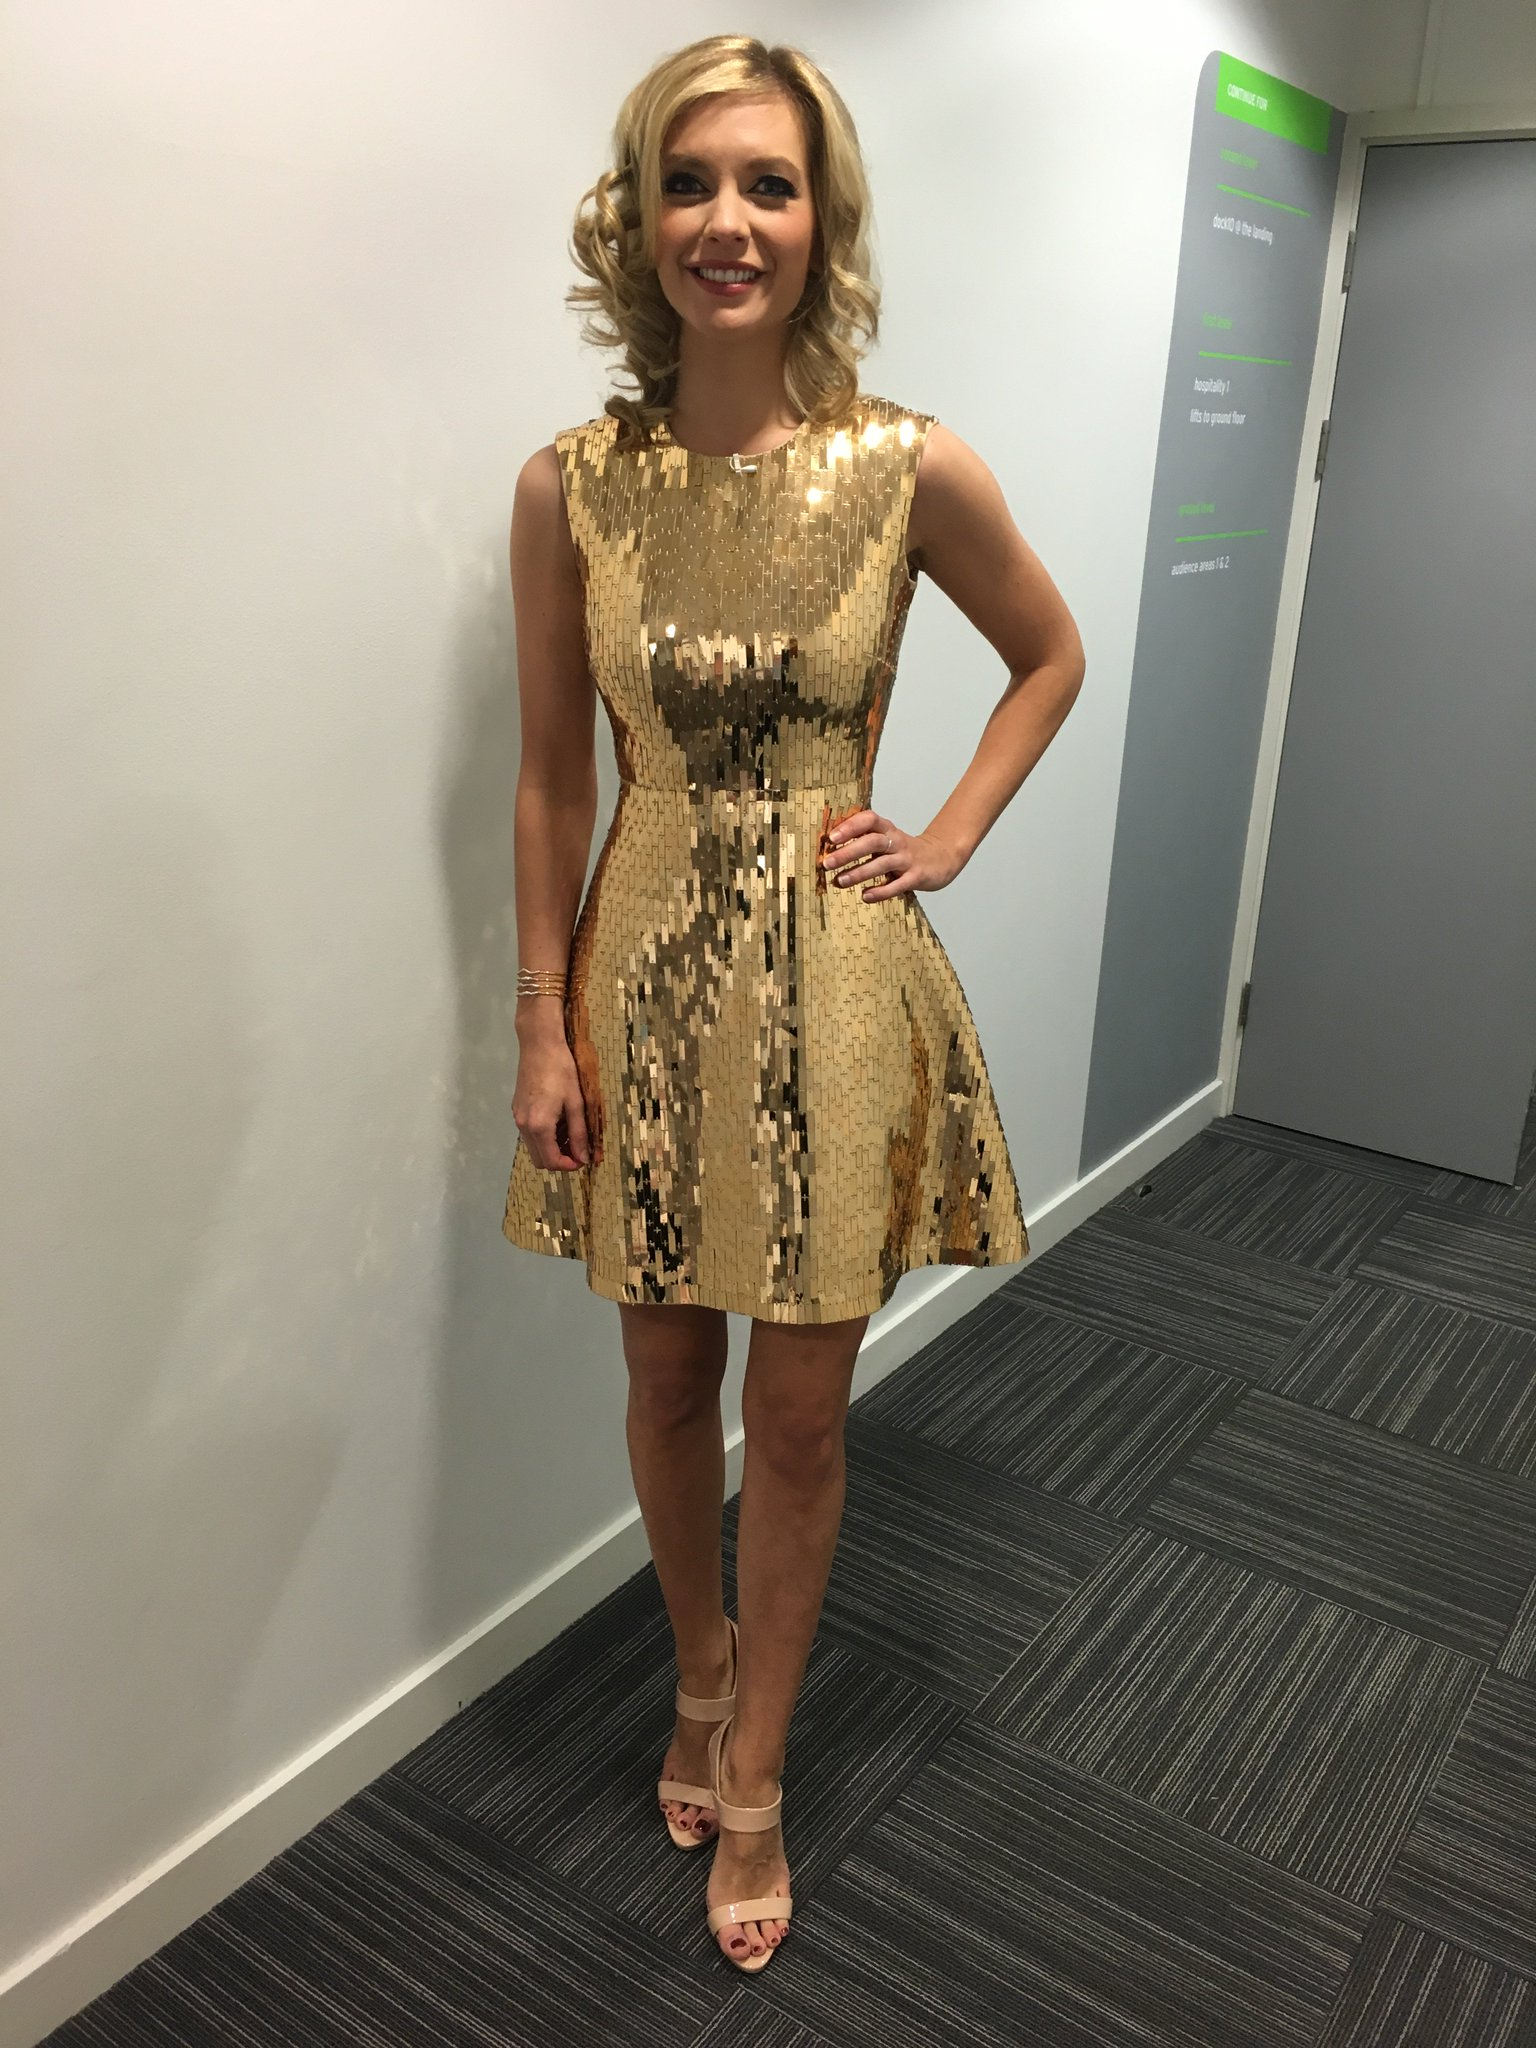 rachel riley - photo #30